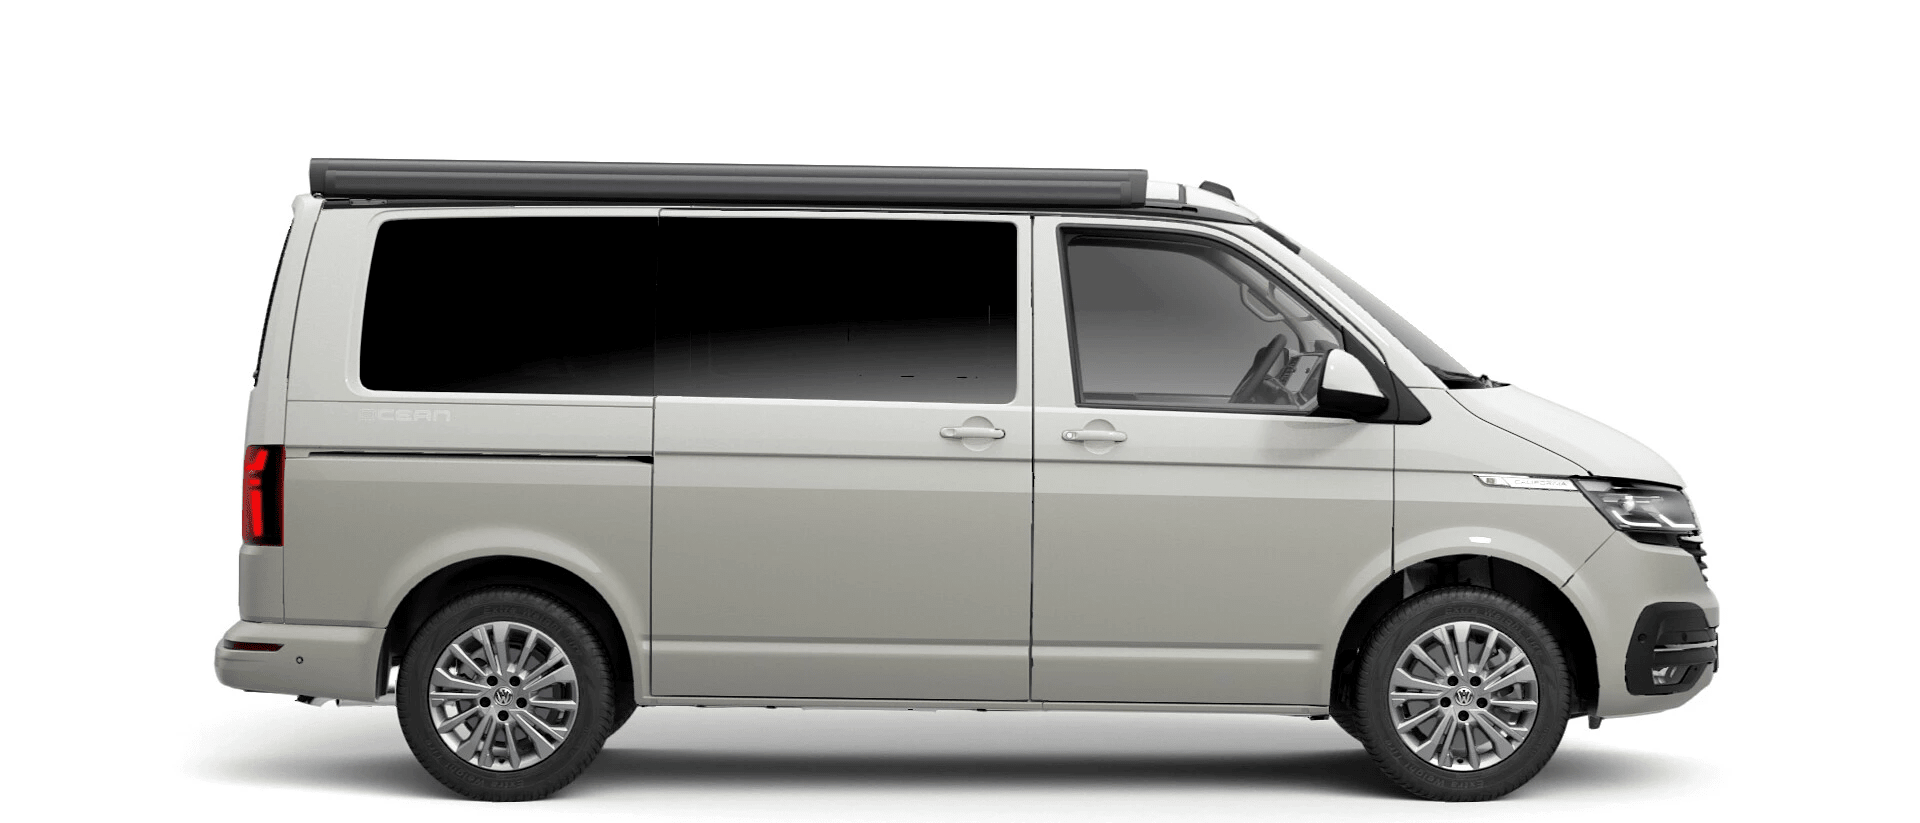 Volkswagen Van Range California - Available In Two Tone Candy White & Ascot Grey